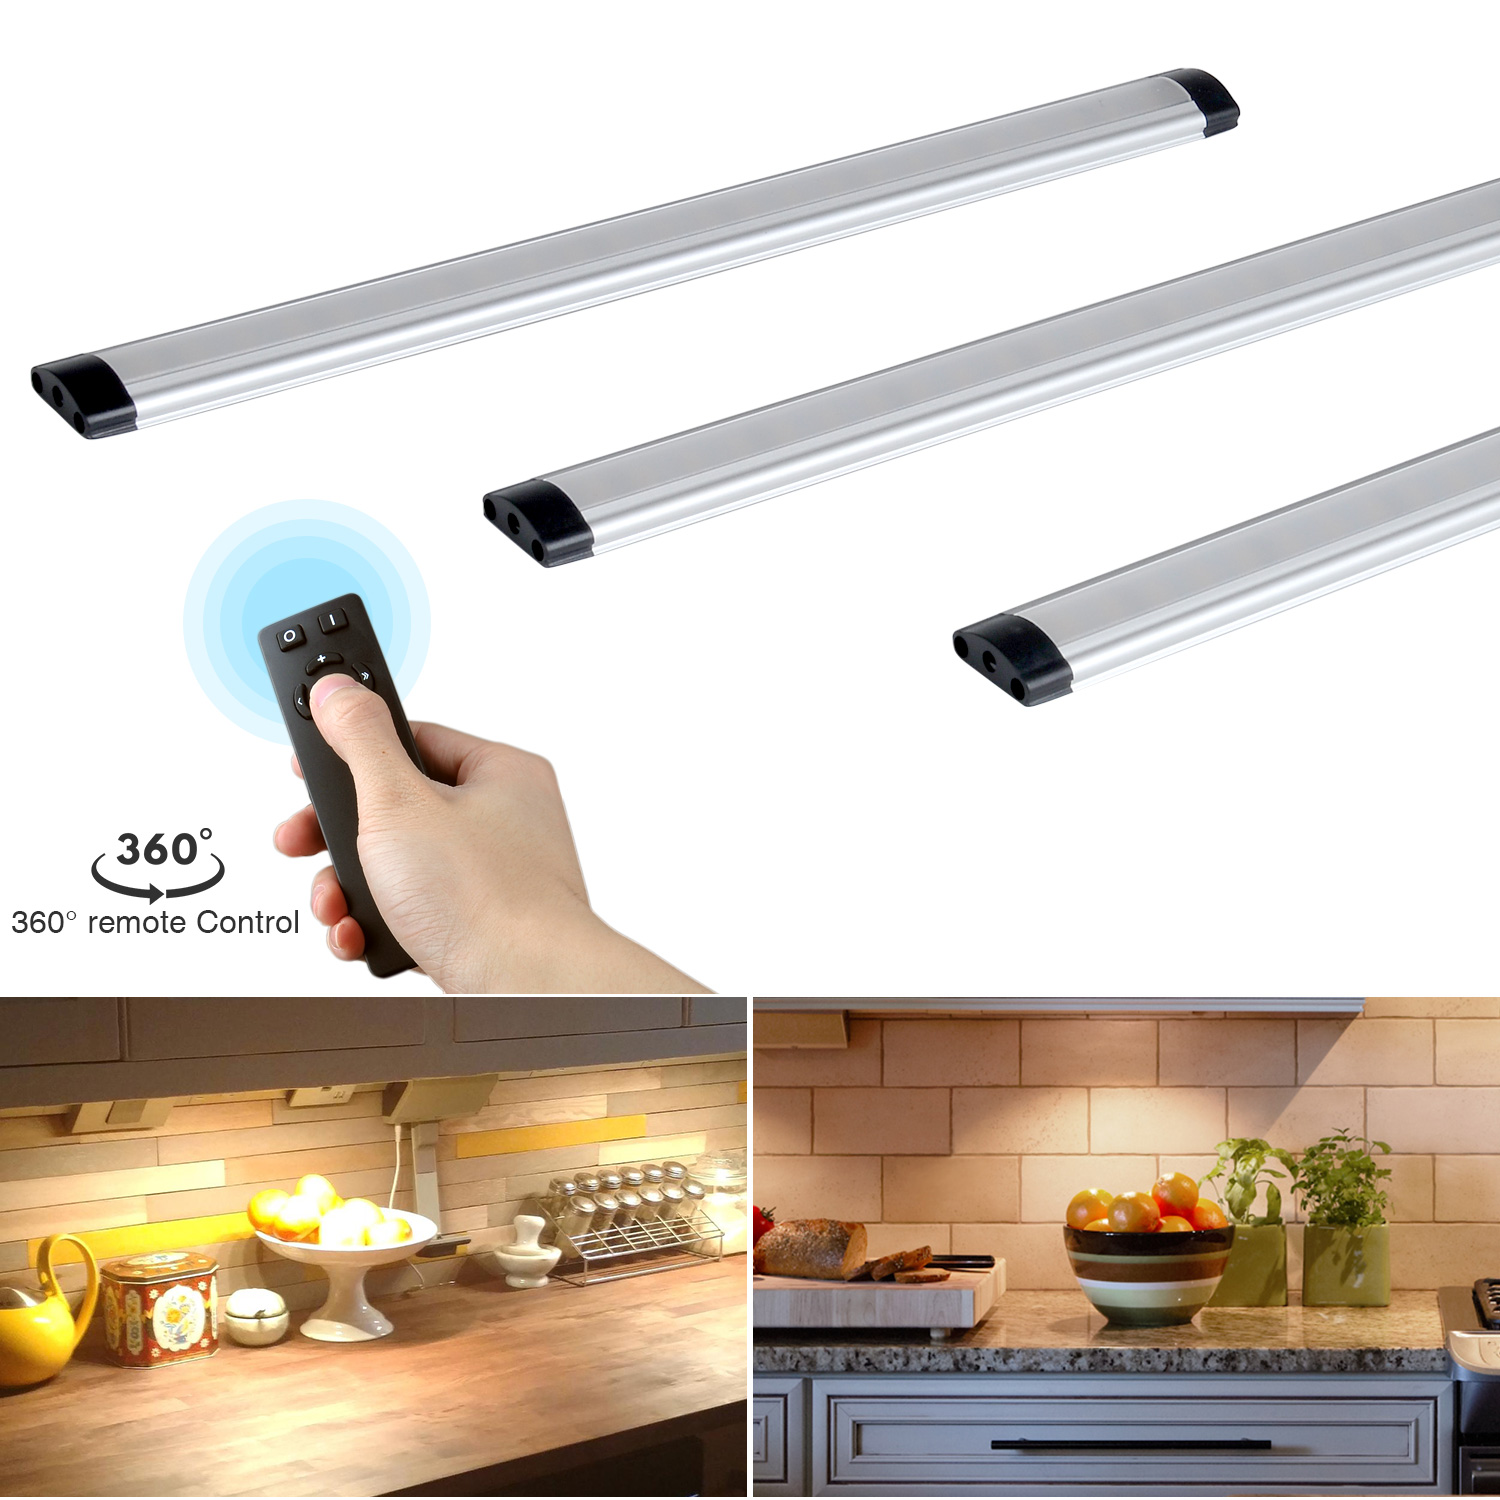 Led Lighting Kitchen Under Cabinet: Remote Control LED Kitchen Under Cabinet Rigid Strip Light